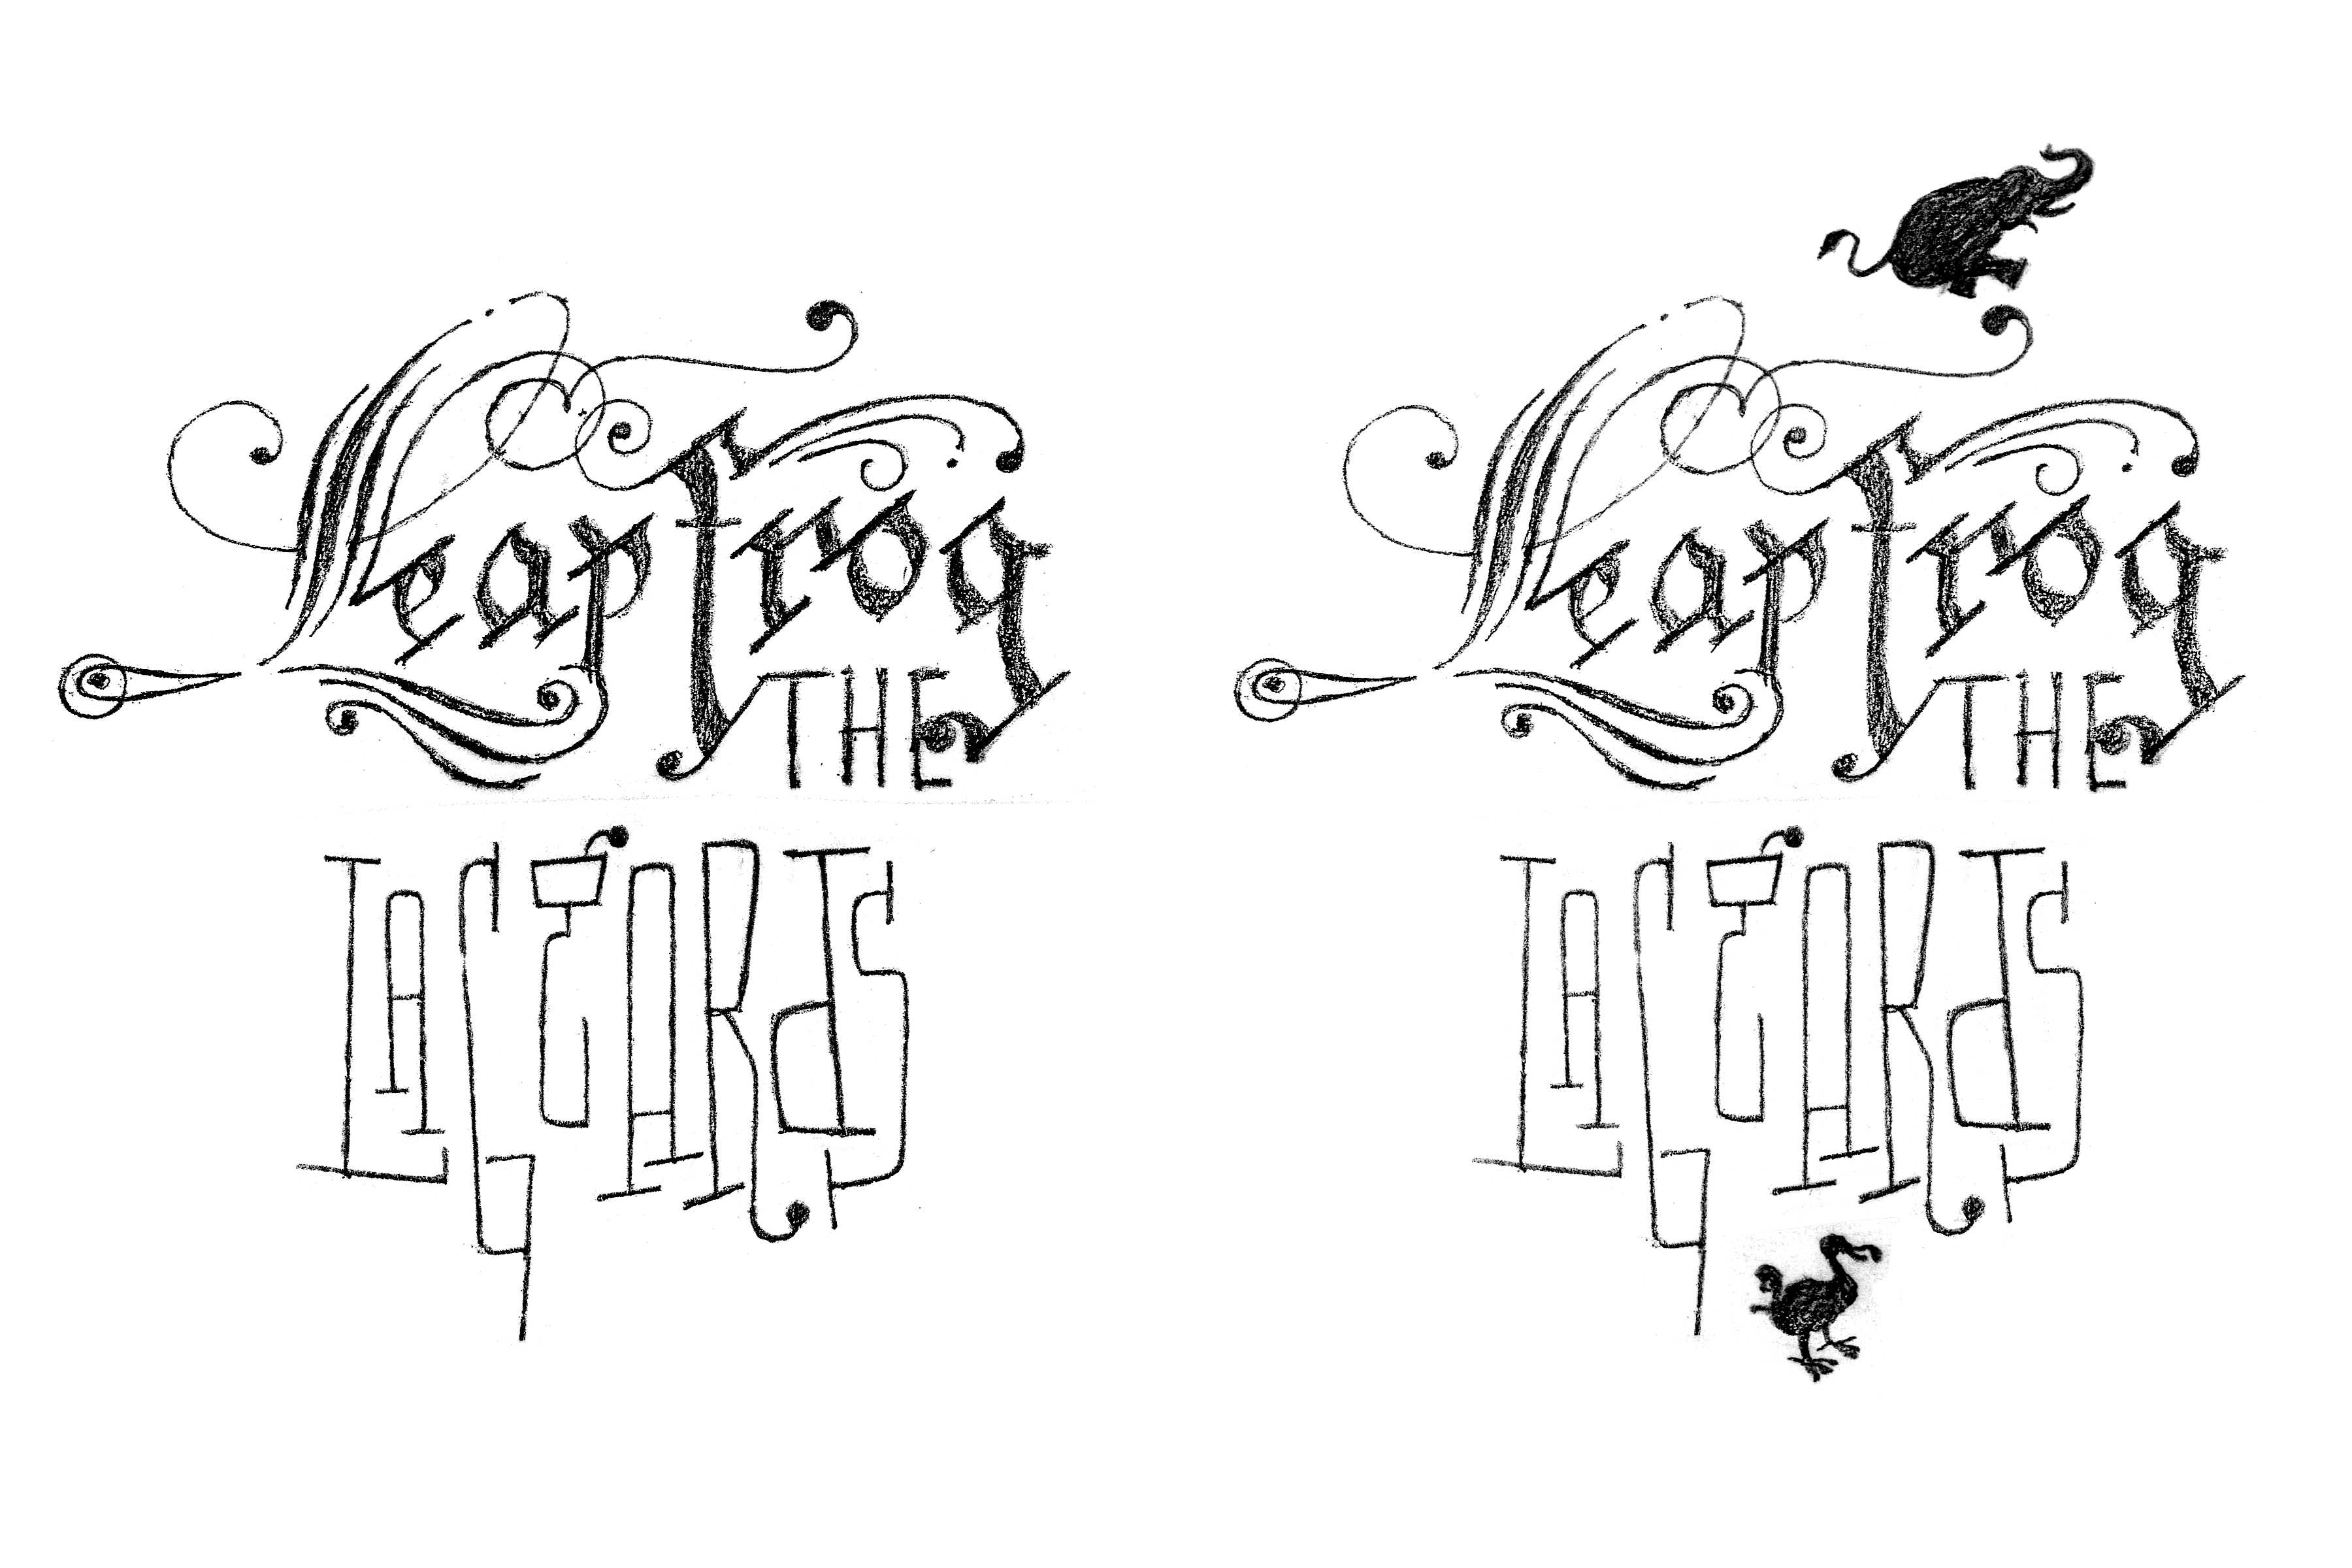 leapfrog the laggards-tight sketches-1